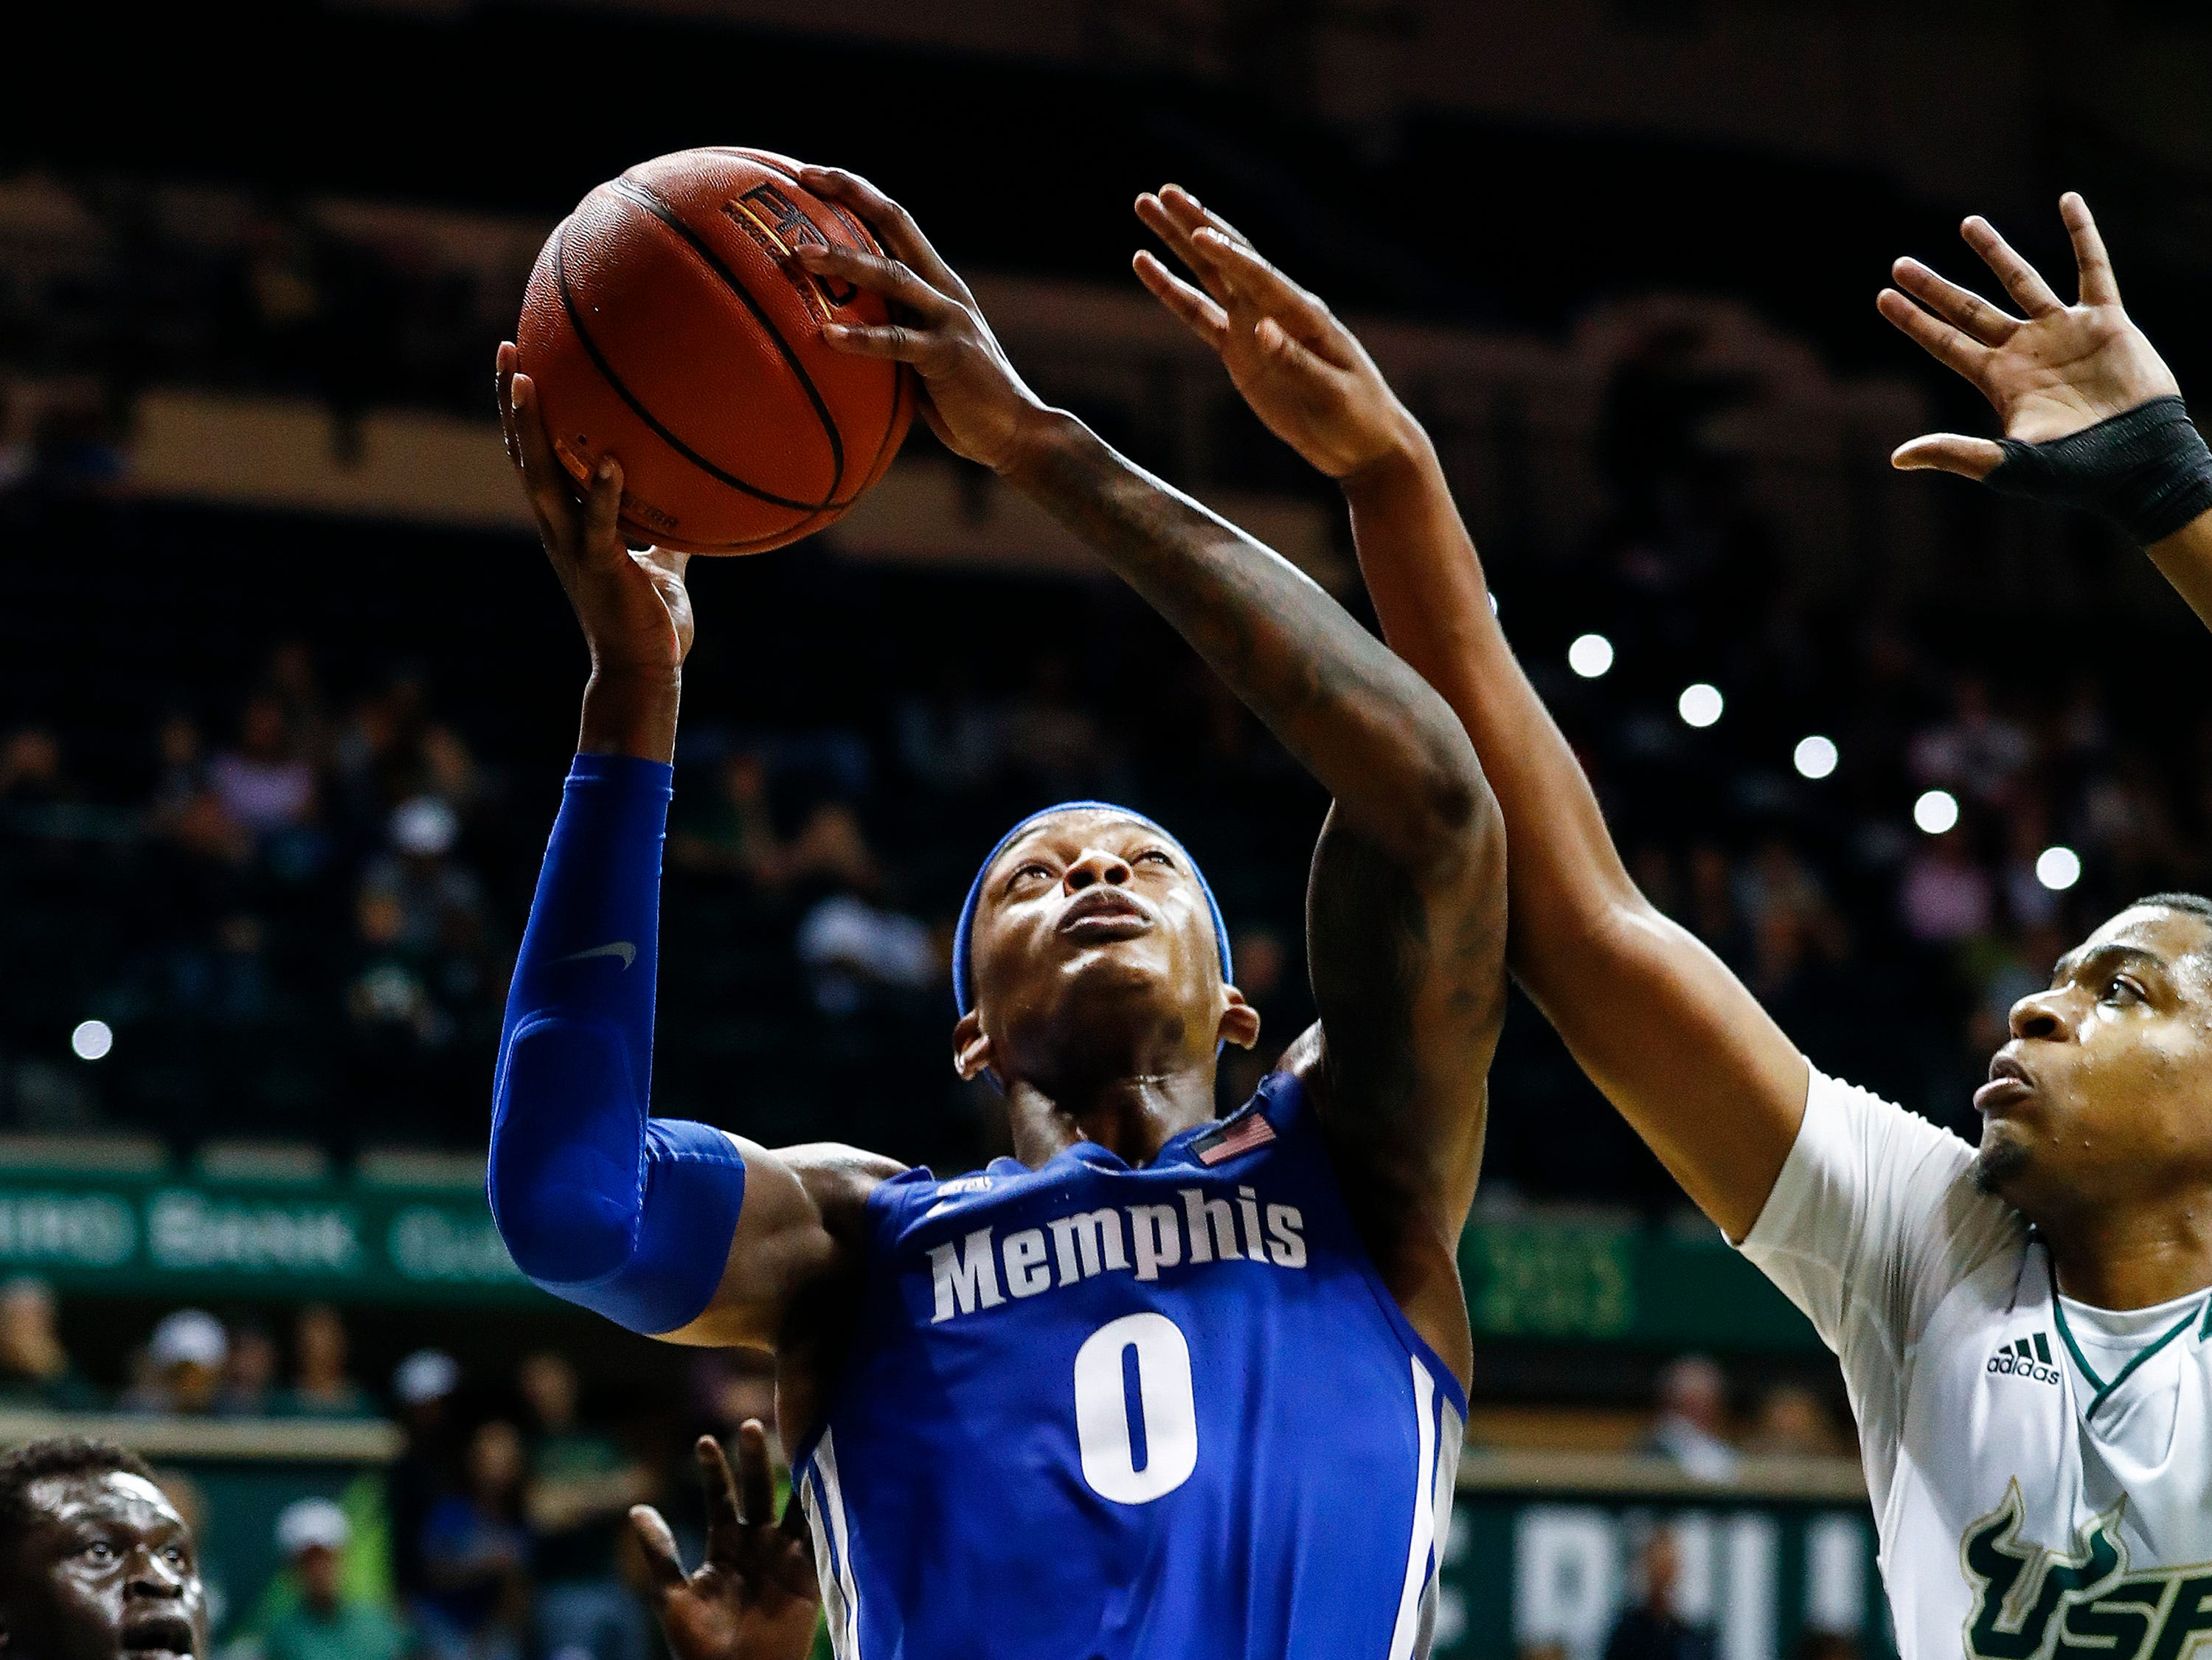 Memphis forward Kyvon Davenport (middle) drives to the basket against USF defender Michael Durr (right) during action in Tampa, Saturday, February 2, 2019.